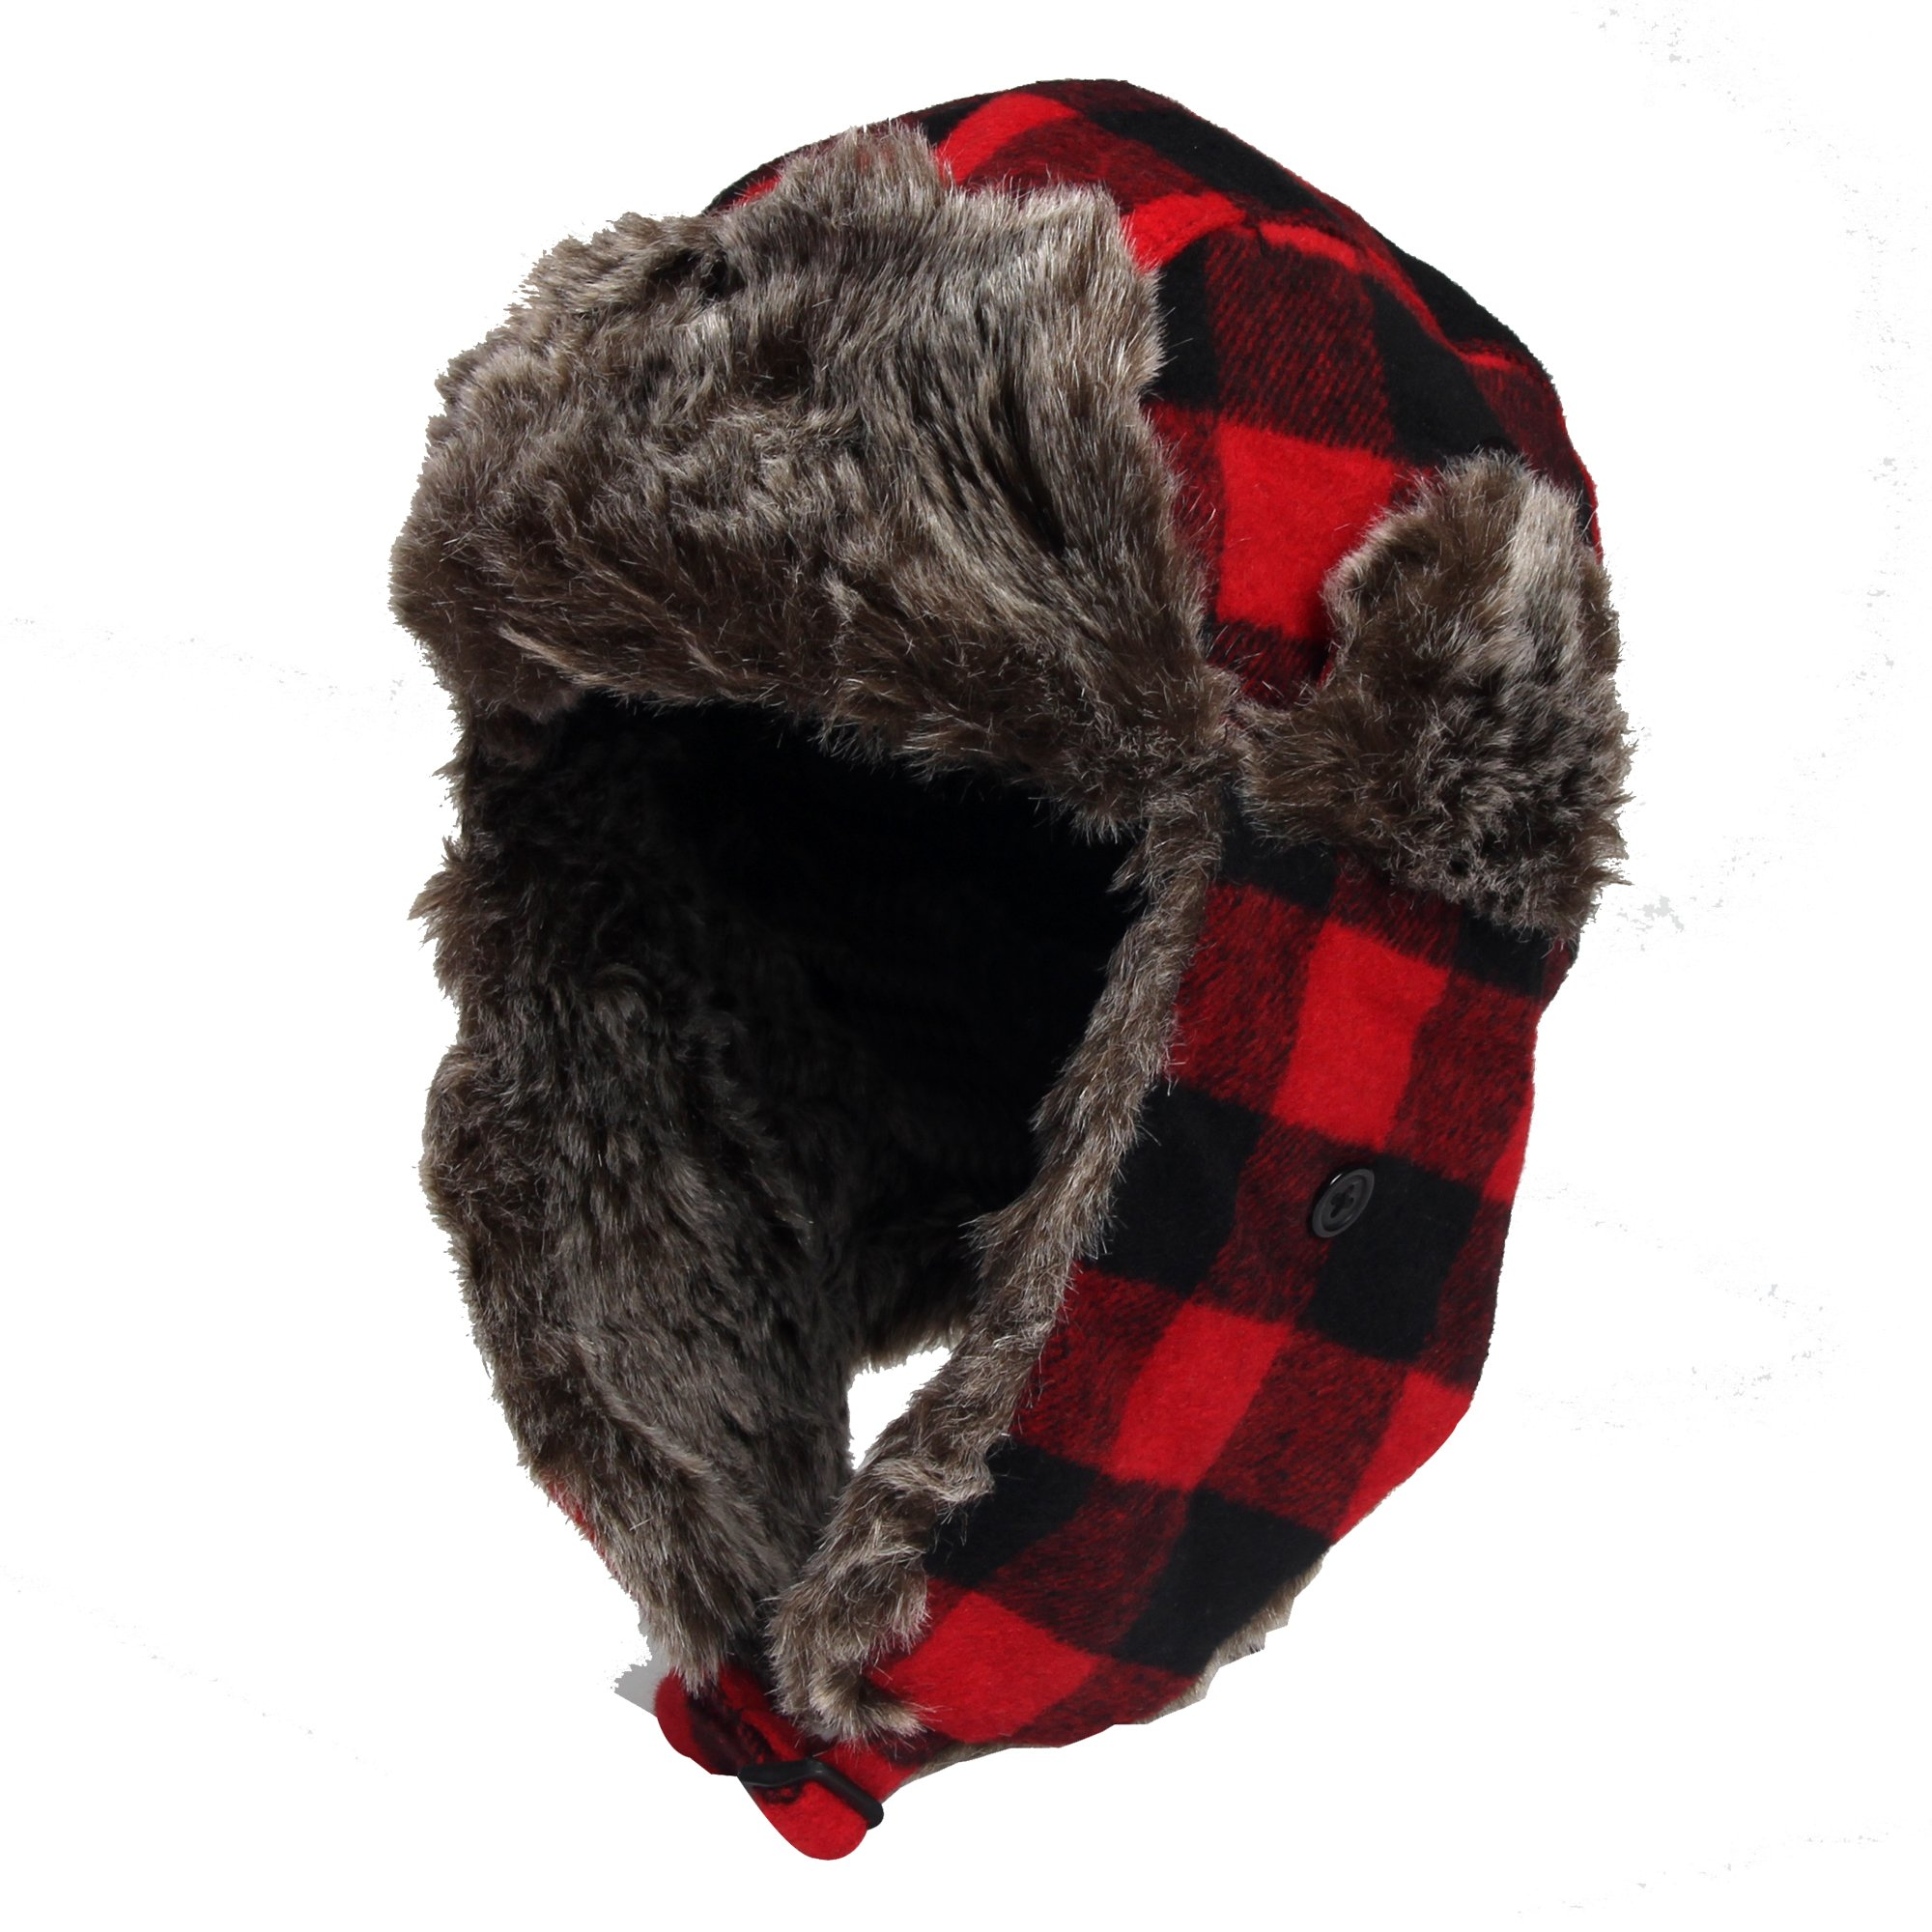 DONGKING Wool Blend Trapper Bomber Hat Earflap Cap Red Plaid Faux Fur Outdoor Winter Hat for Women (RED)